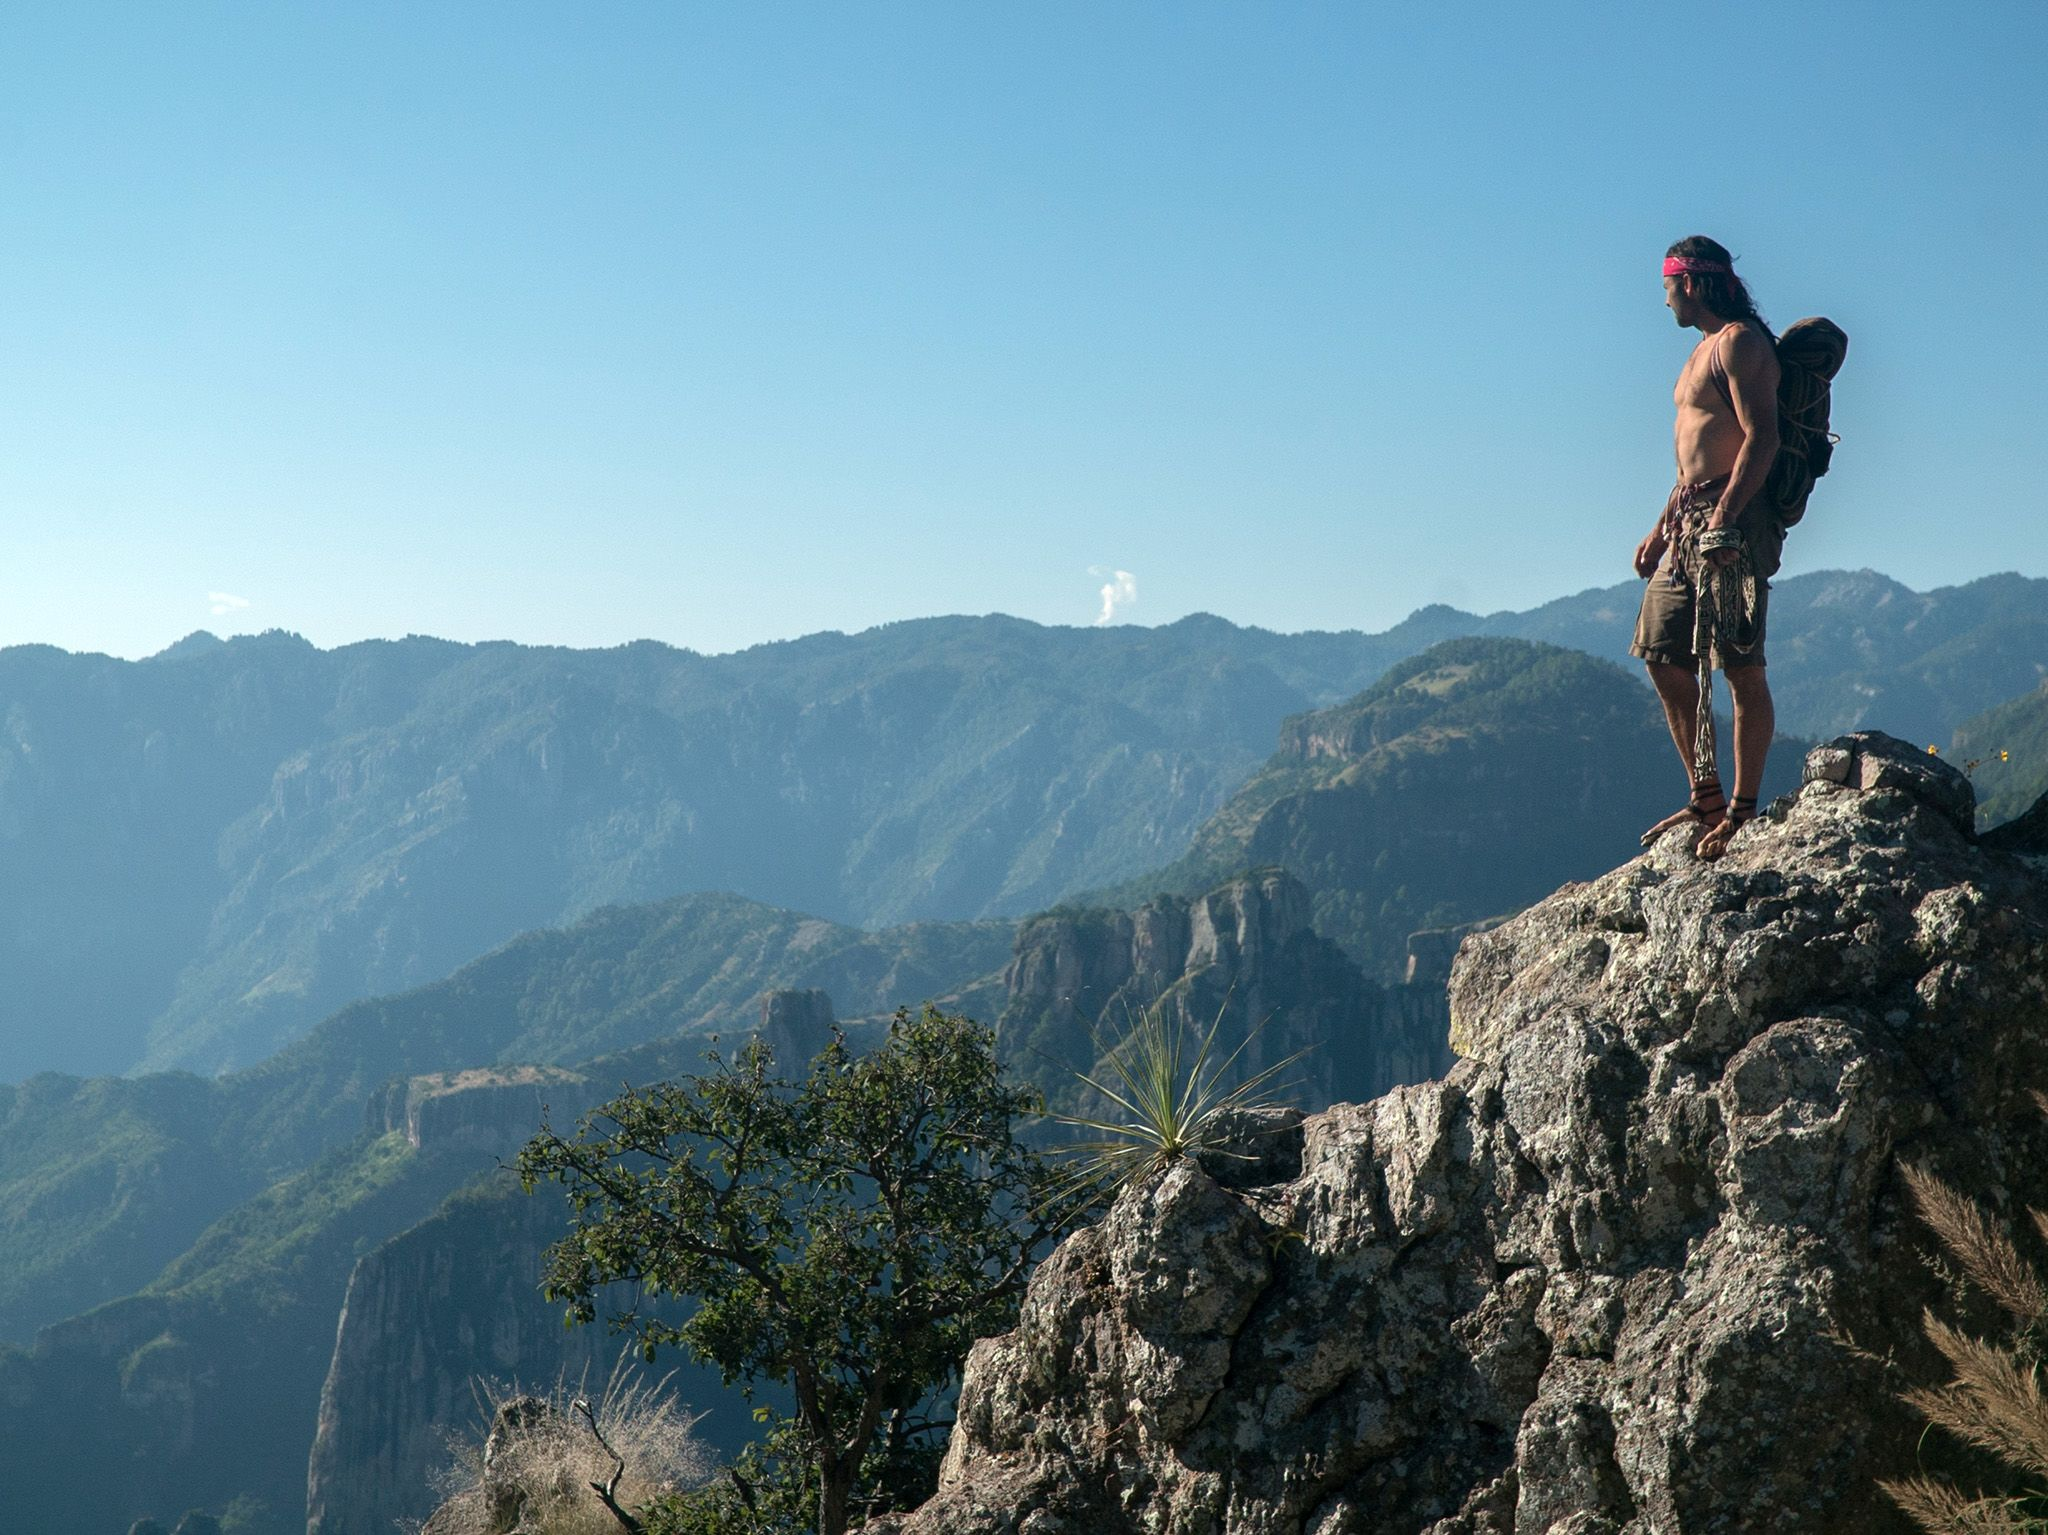 Copper Canyon, Mexico:  Hazen on Copper Canyon. This image is from Primal Survivor. [Foto del giorno - December 2018]